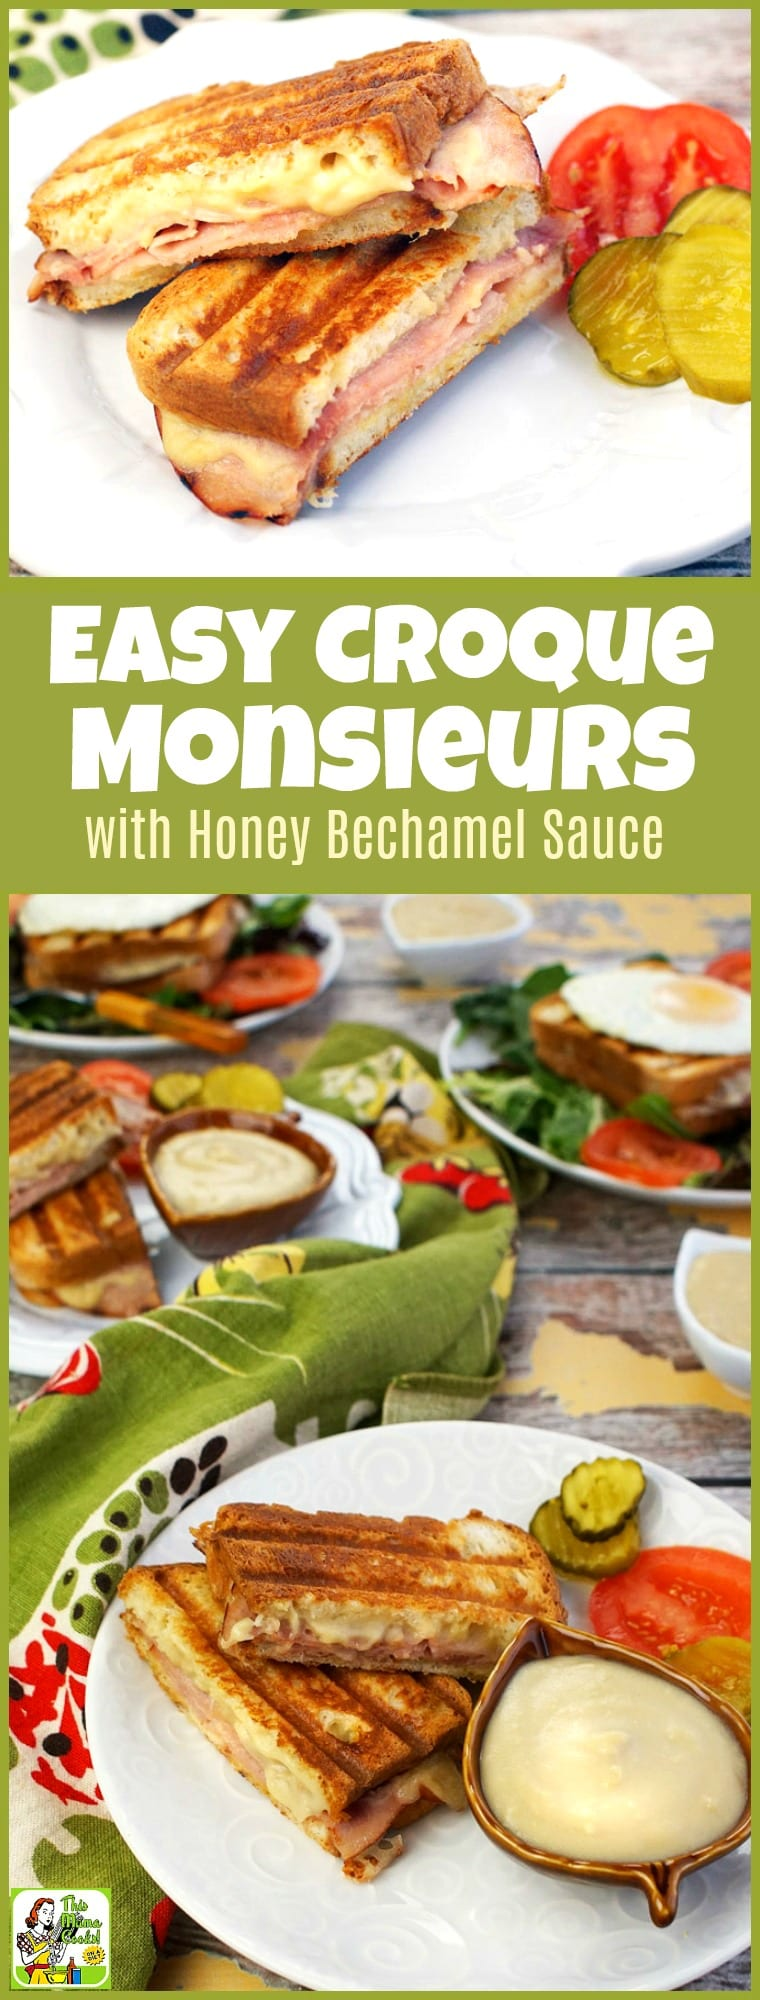 Just because you're gluten free doesn't mean you can't enjoy an Easy Croque Monsieur with Honey Bechamel Sauce! Just use gluten free bread, ham and the included honey bechamel sauce recipe. Add a fried egg on top and turn it into a croque madame recipe that's perfect to entertain friends and family for brunch. #recipe #easy #recipeoftheday #healthyrecipes #glutenfree #easyrecipes #breakfast #brunch #snack #snacks #panini #grilledcheese #sandwiches #ham #cheese #honey #bechamel